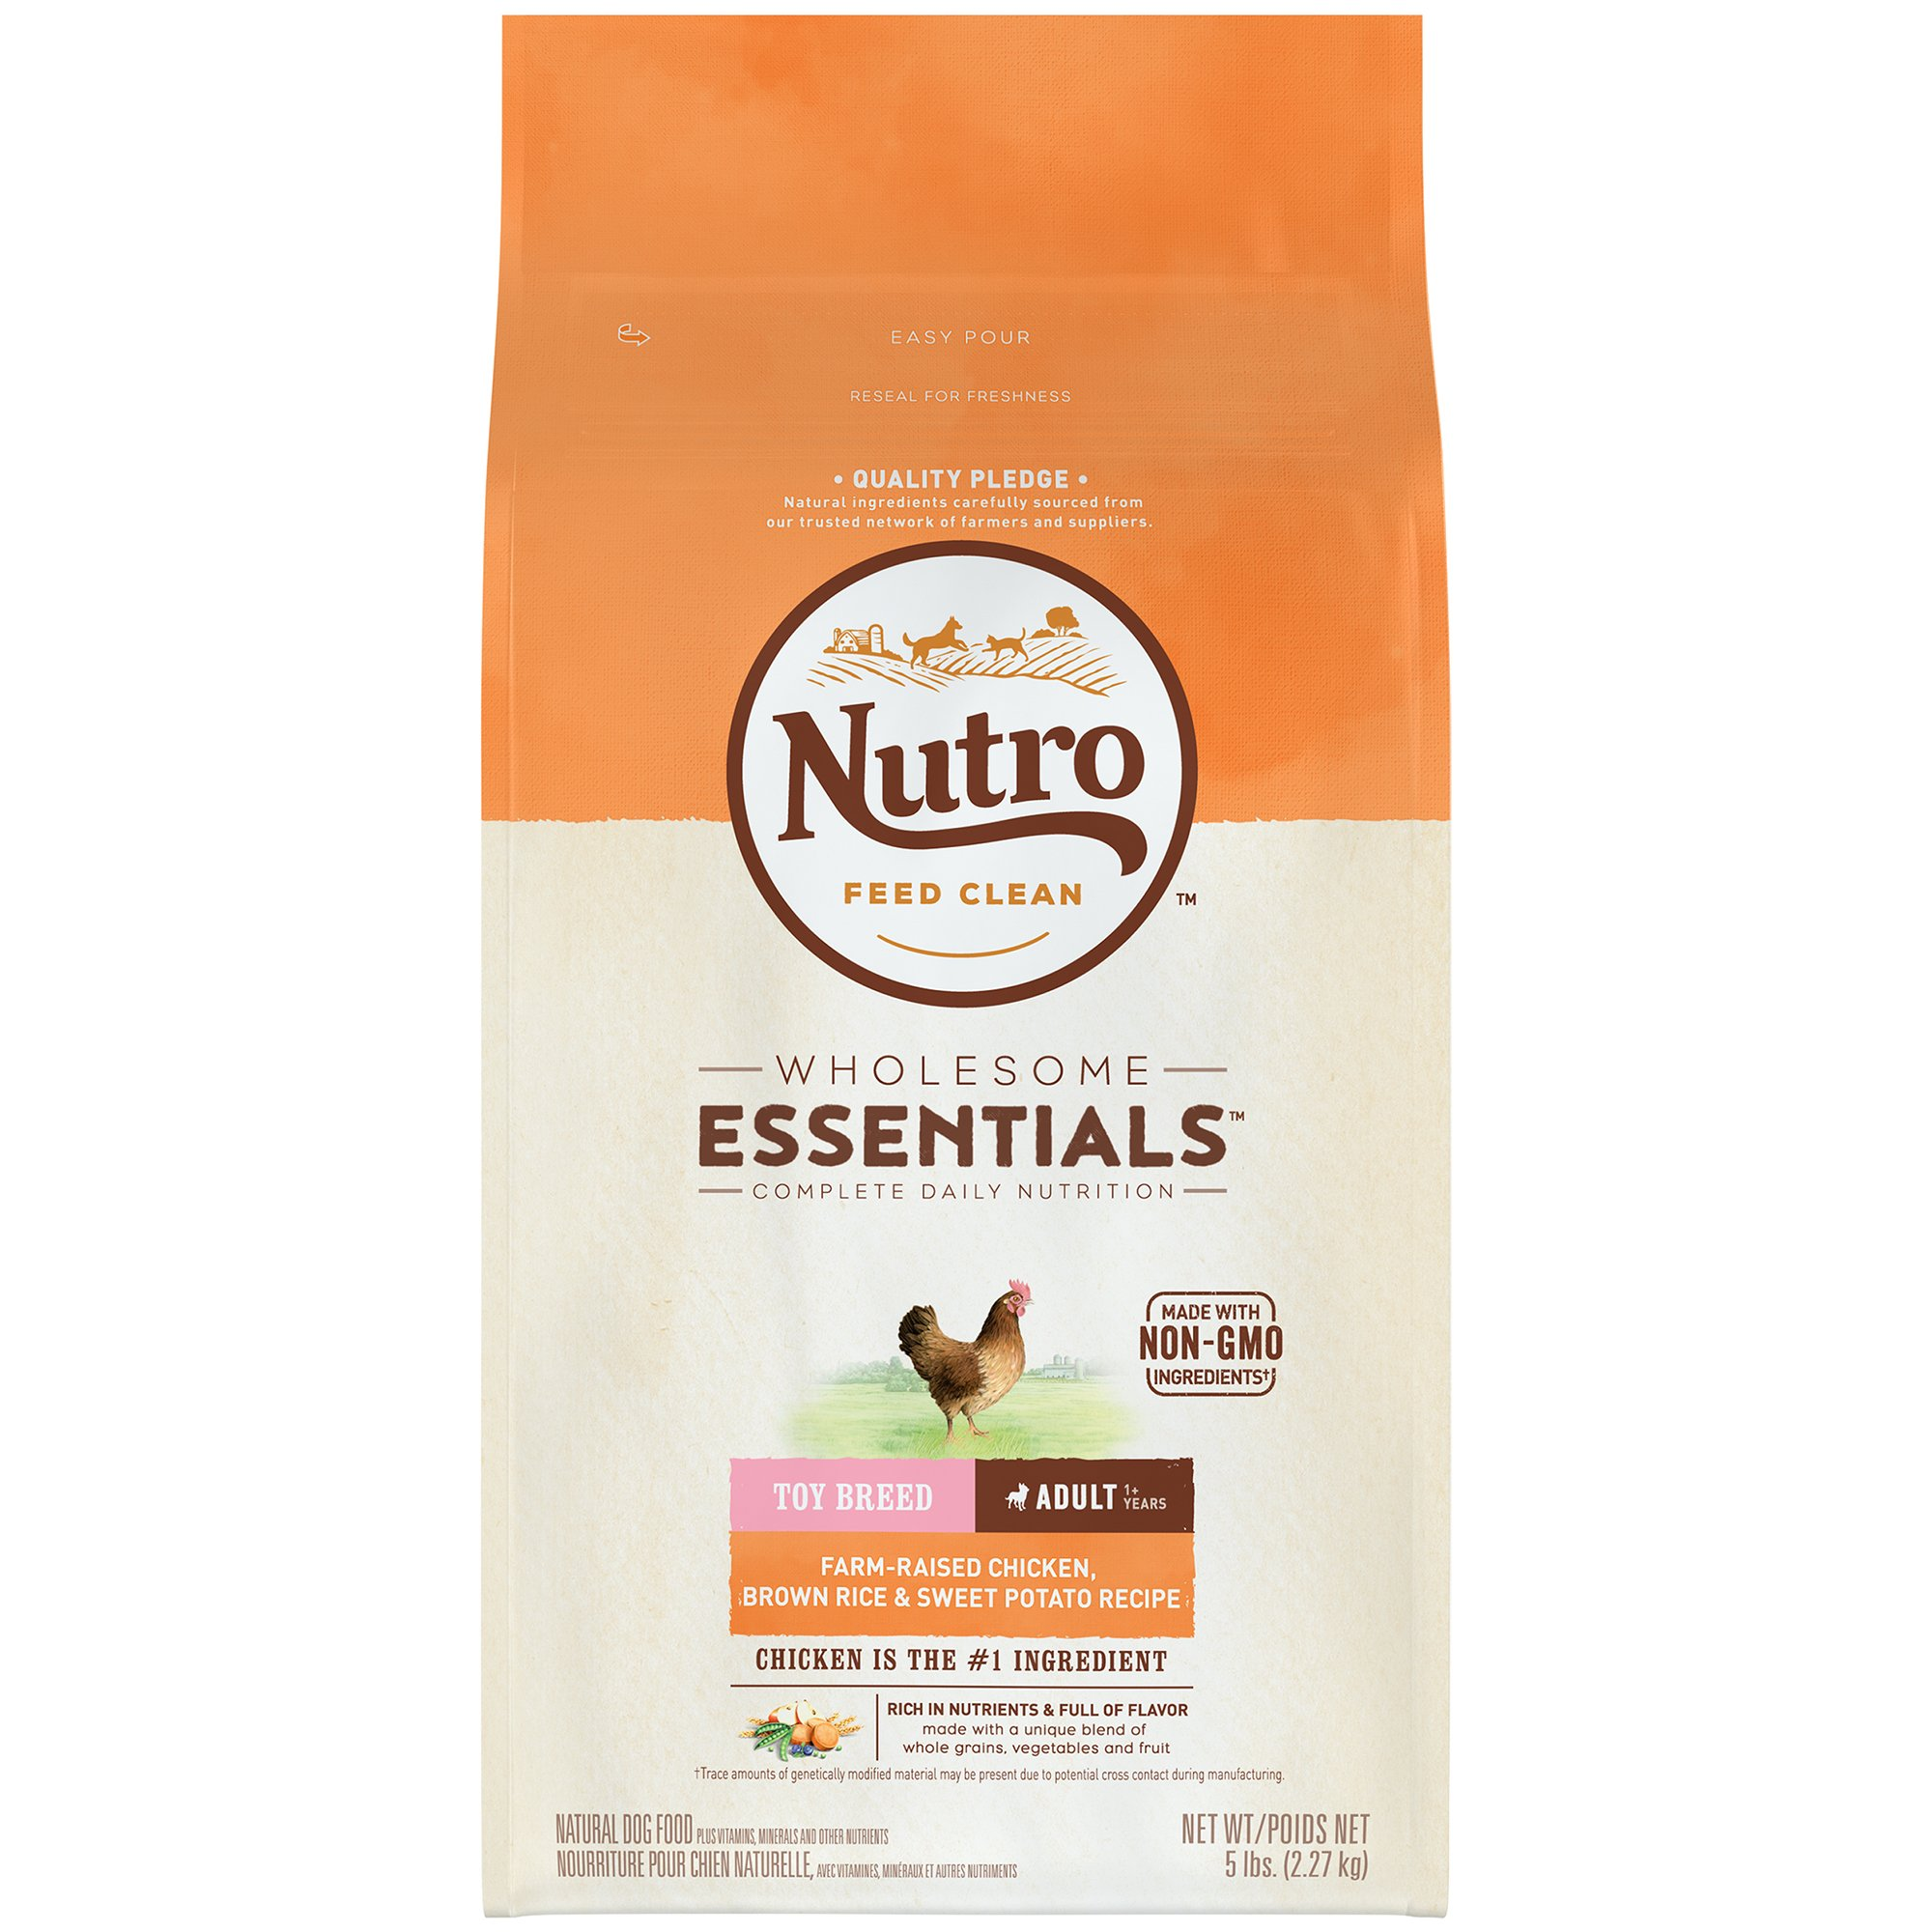 Nutro Wholesome Essentials Toy Breed Adult Farm-Raised Chicken, Brown Rice & Sweet Potato Recipe 5 pounds